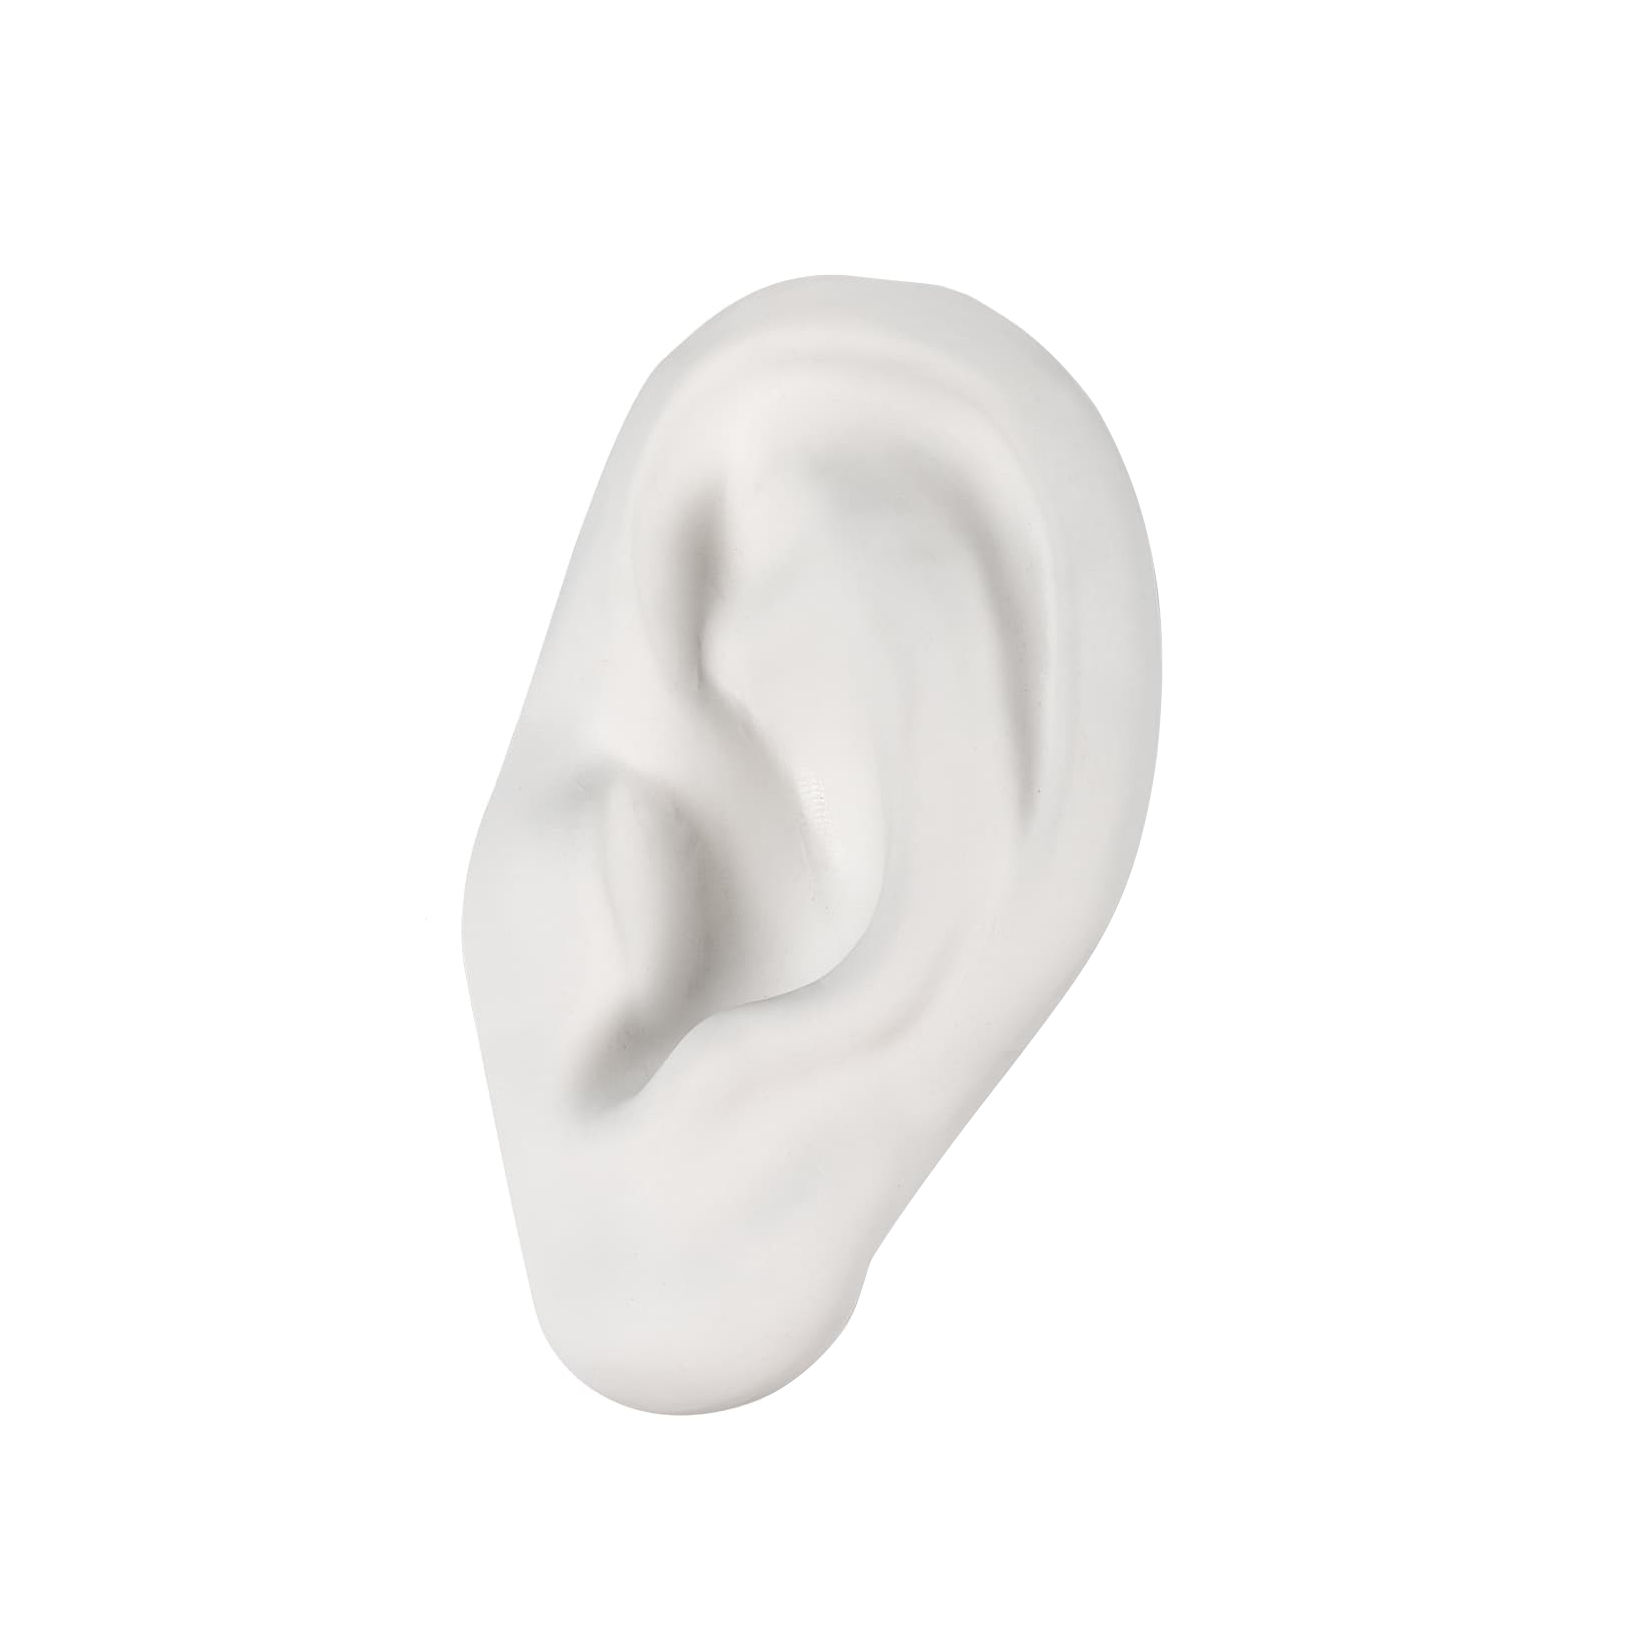 Decoration - Home Accessories - Memorabilia Mvsevm Decoration - / Ear by Seletti - Ear / White - China